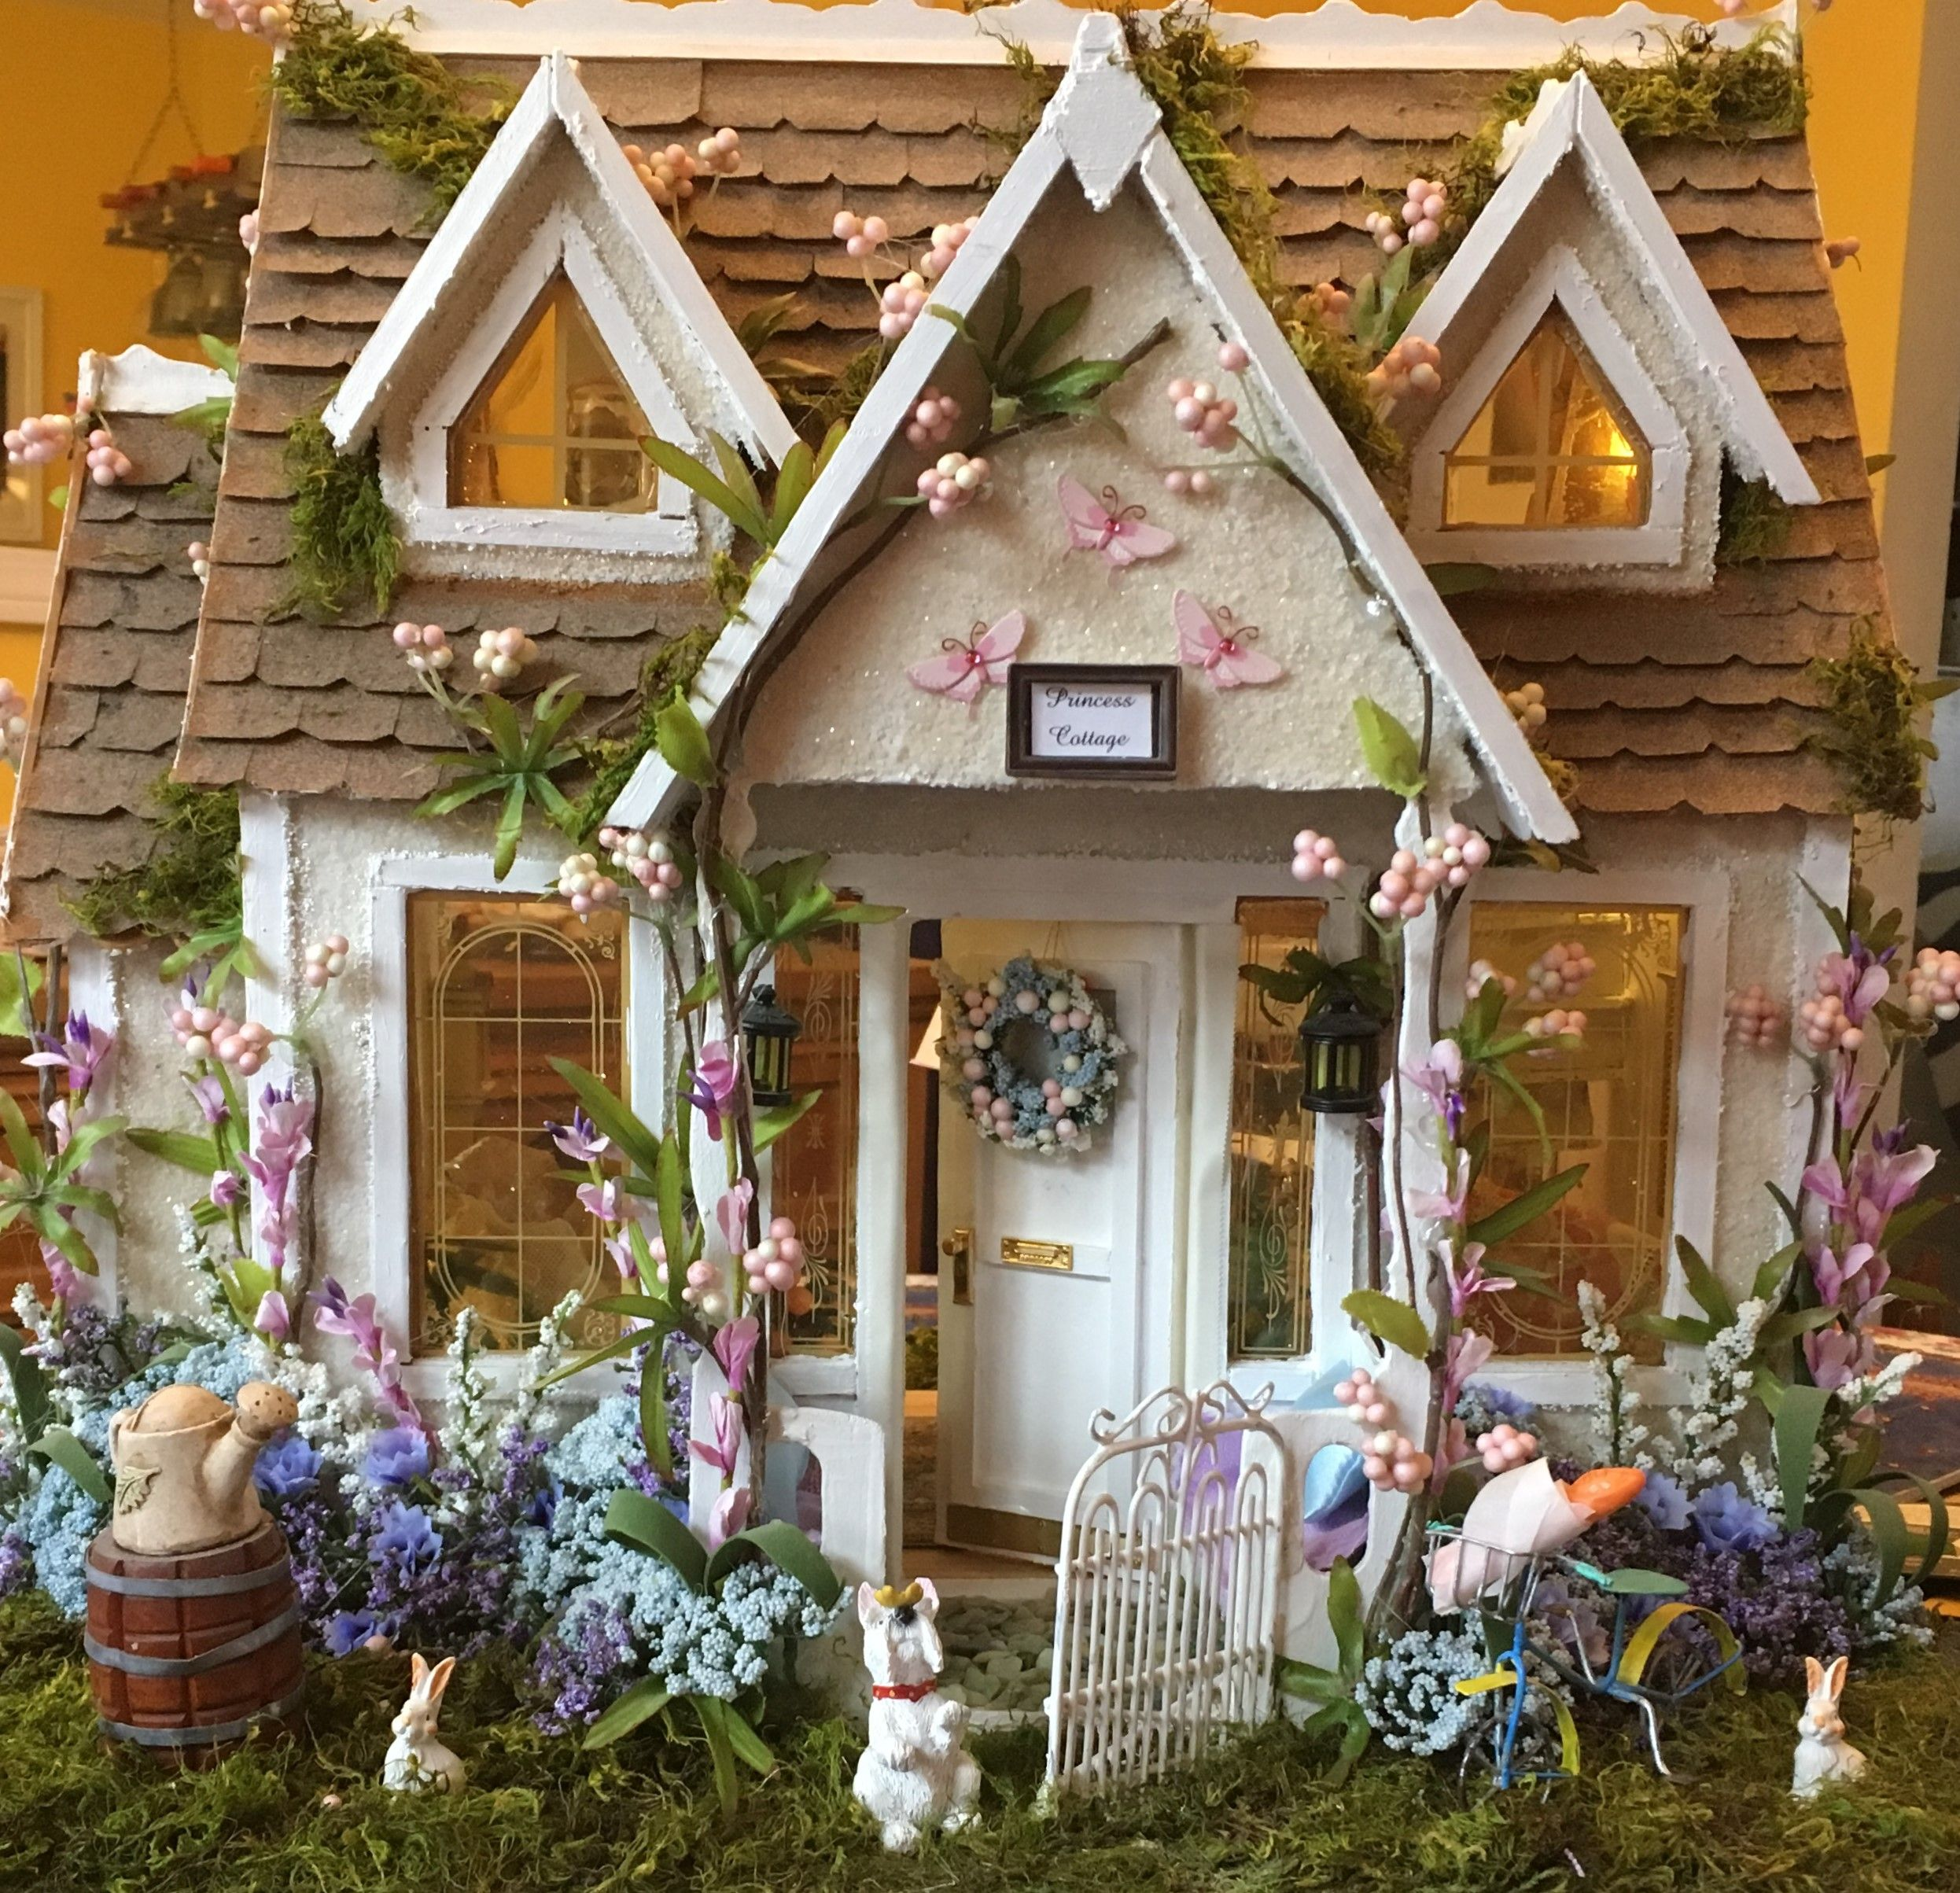 The Princess Cottage Dollhouse Exterior Doll House Plans Glitter Houses Miniature Houses